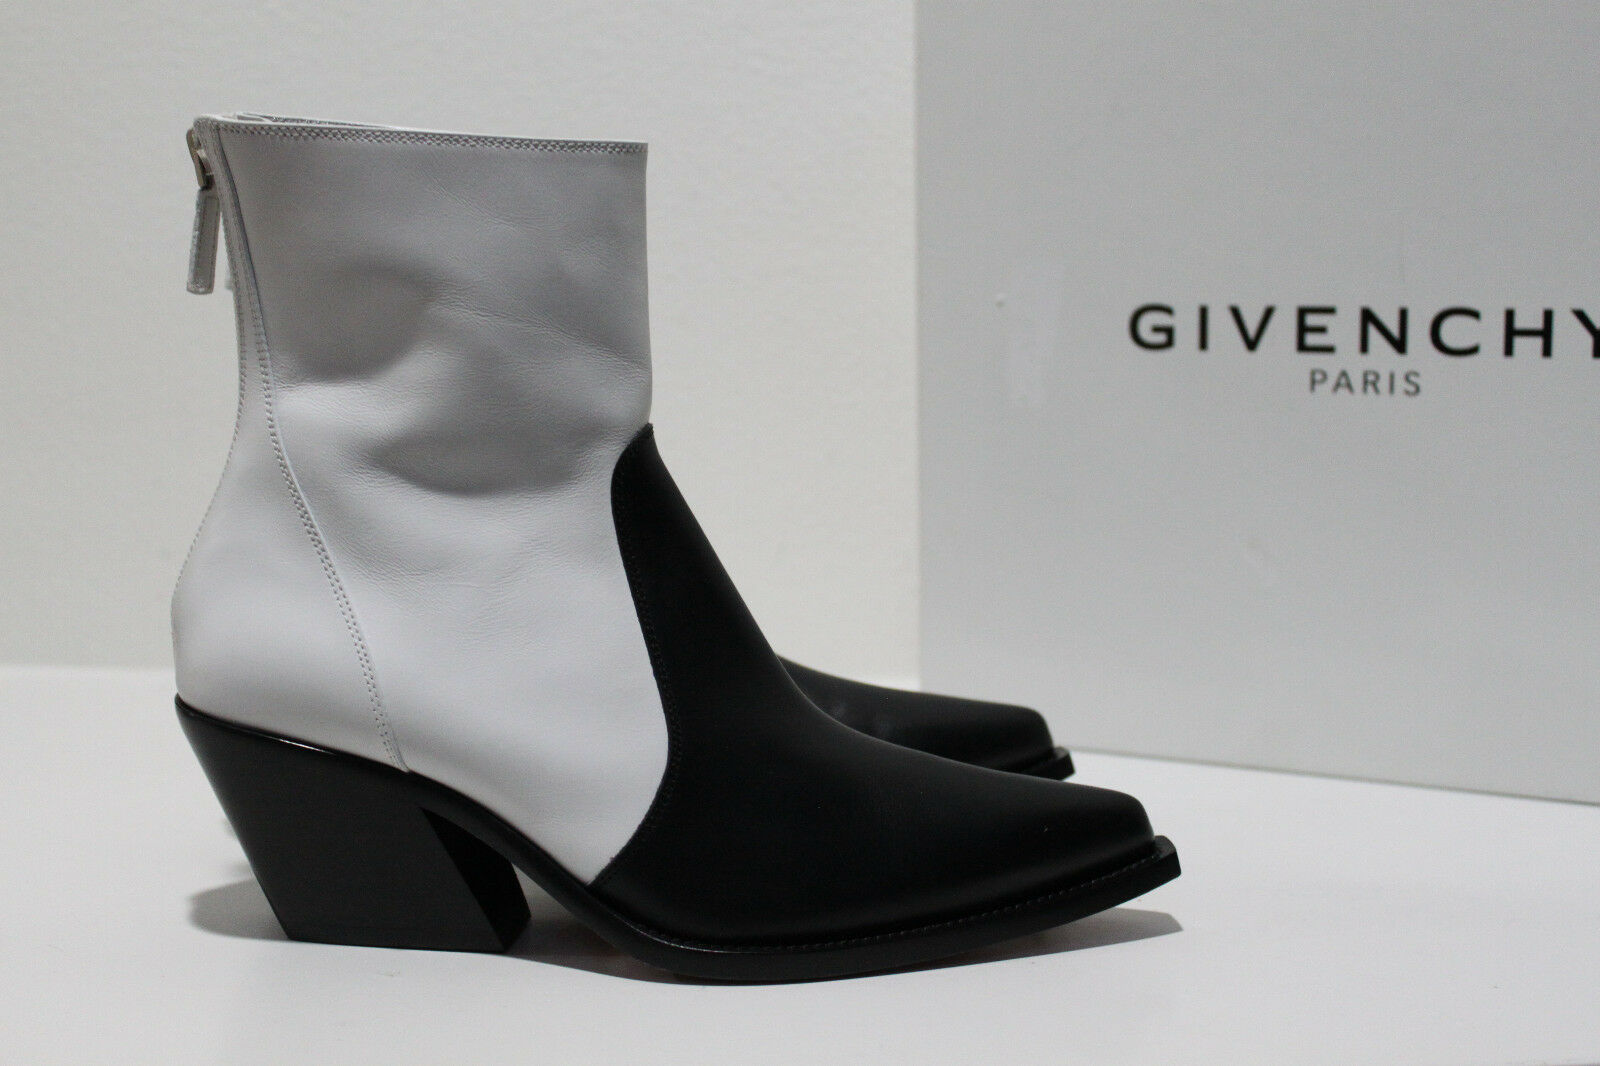 New sz 6.5   37 Givenchy Black & White Leather Cowboy Ankle Bootie Heel shoes